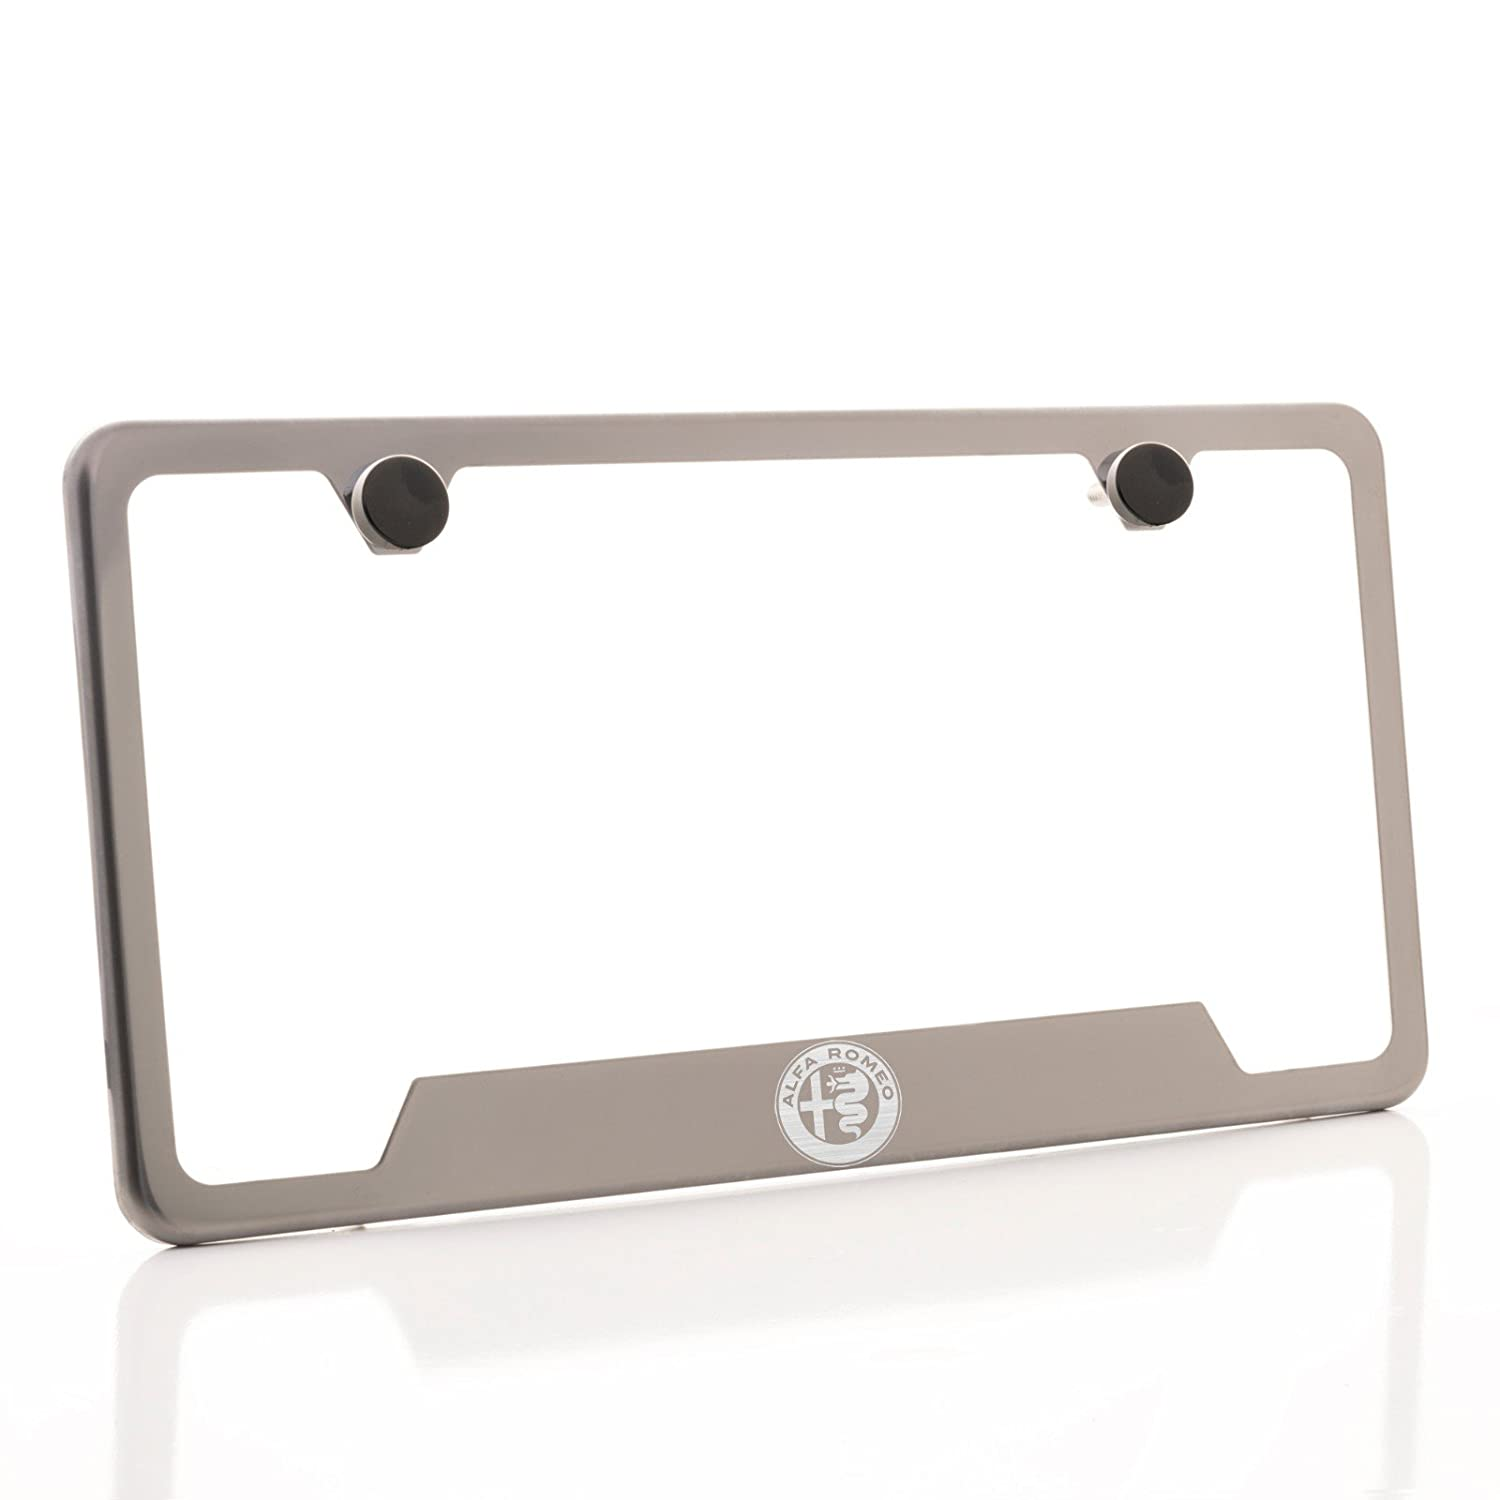 KA Depot One Fit Alfa Romeo Logo on Gun Metal Black Chrome Titanium Bottom Cut Out Stainless Steel License Plate Frame Holder Front Or Rear Bracket Laser Etch Engraved Aluminum Screw Cap